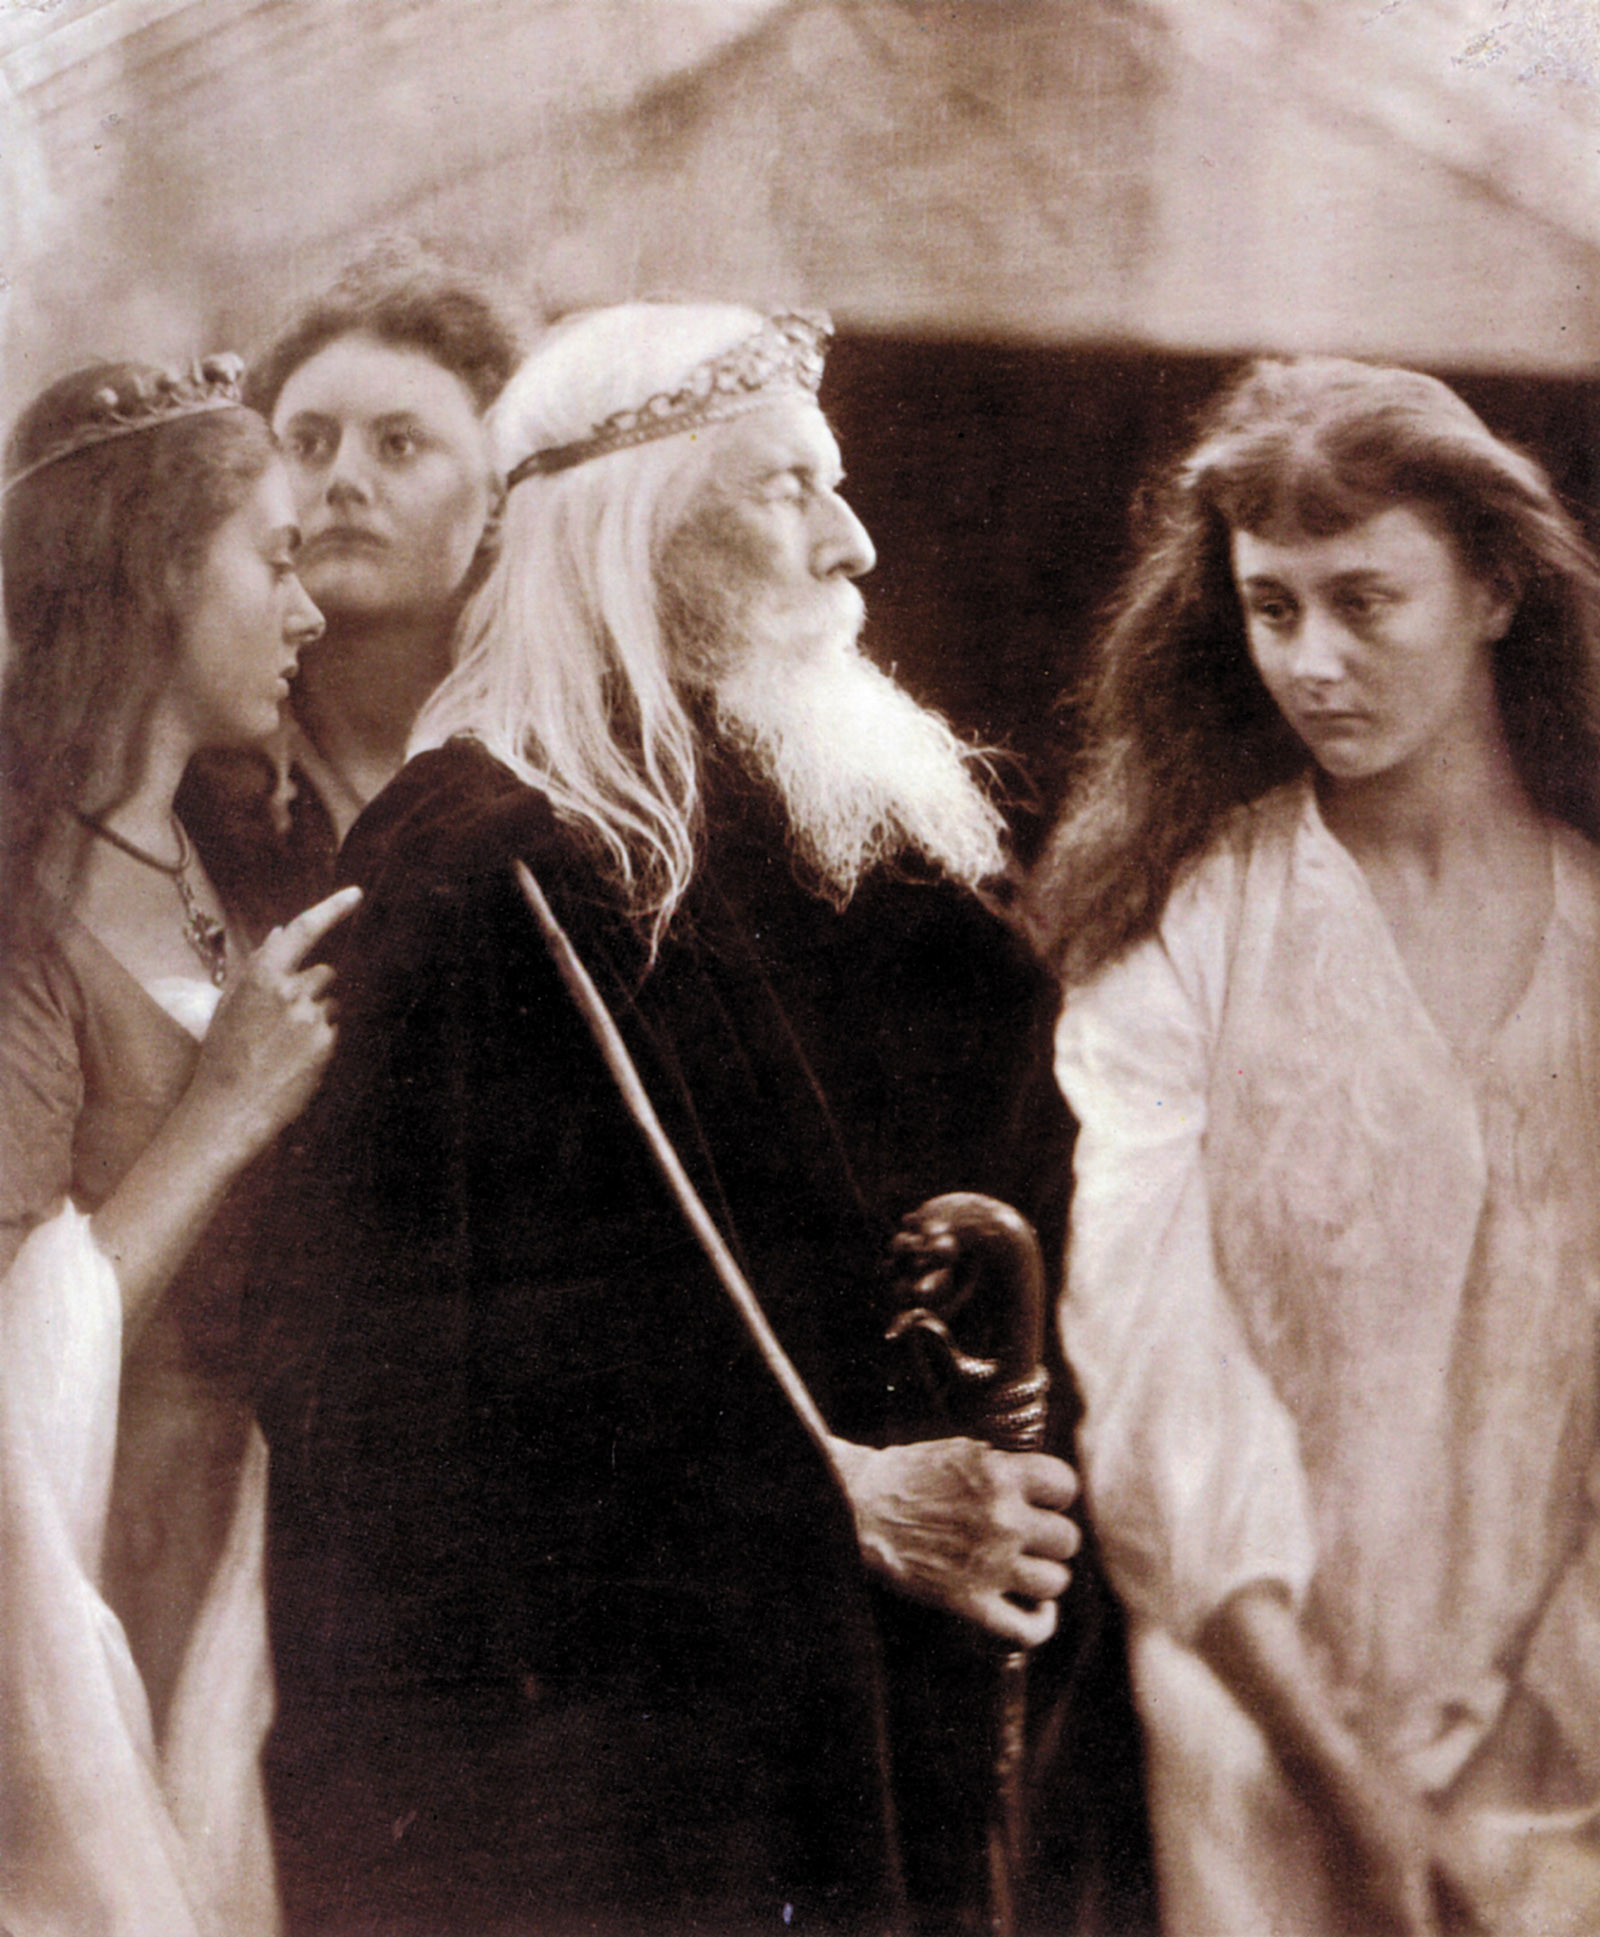 'King Lear Allotting His Kingdom to His Three Daughters'; photograph by Julia Margaret Cameron, 1872. From left are Lorina Liddell, Edith Liddell, Charles Hay Cameron, and Alice Liddell.